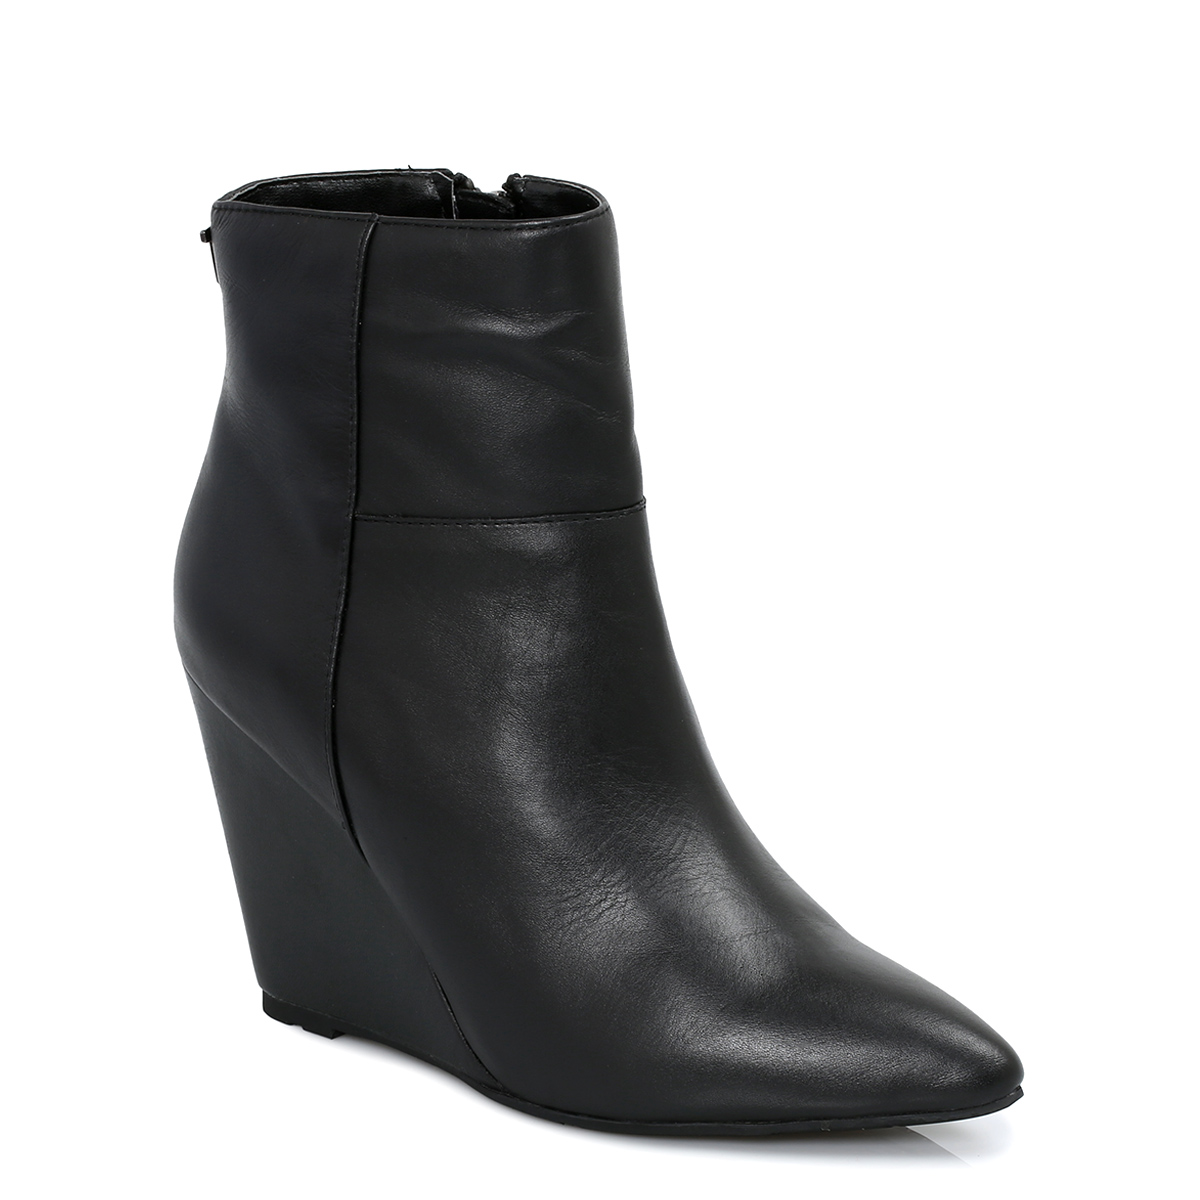 Girls Size 3 Black Boots ($ - $): 30 of items - Shop Girls Size 3 Black Boots from ALL your favorite stores & find HUGE SAVINGS up to 80% off Girls Size 3 Black Boots, including GREAT .